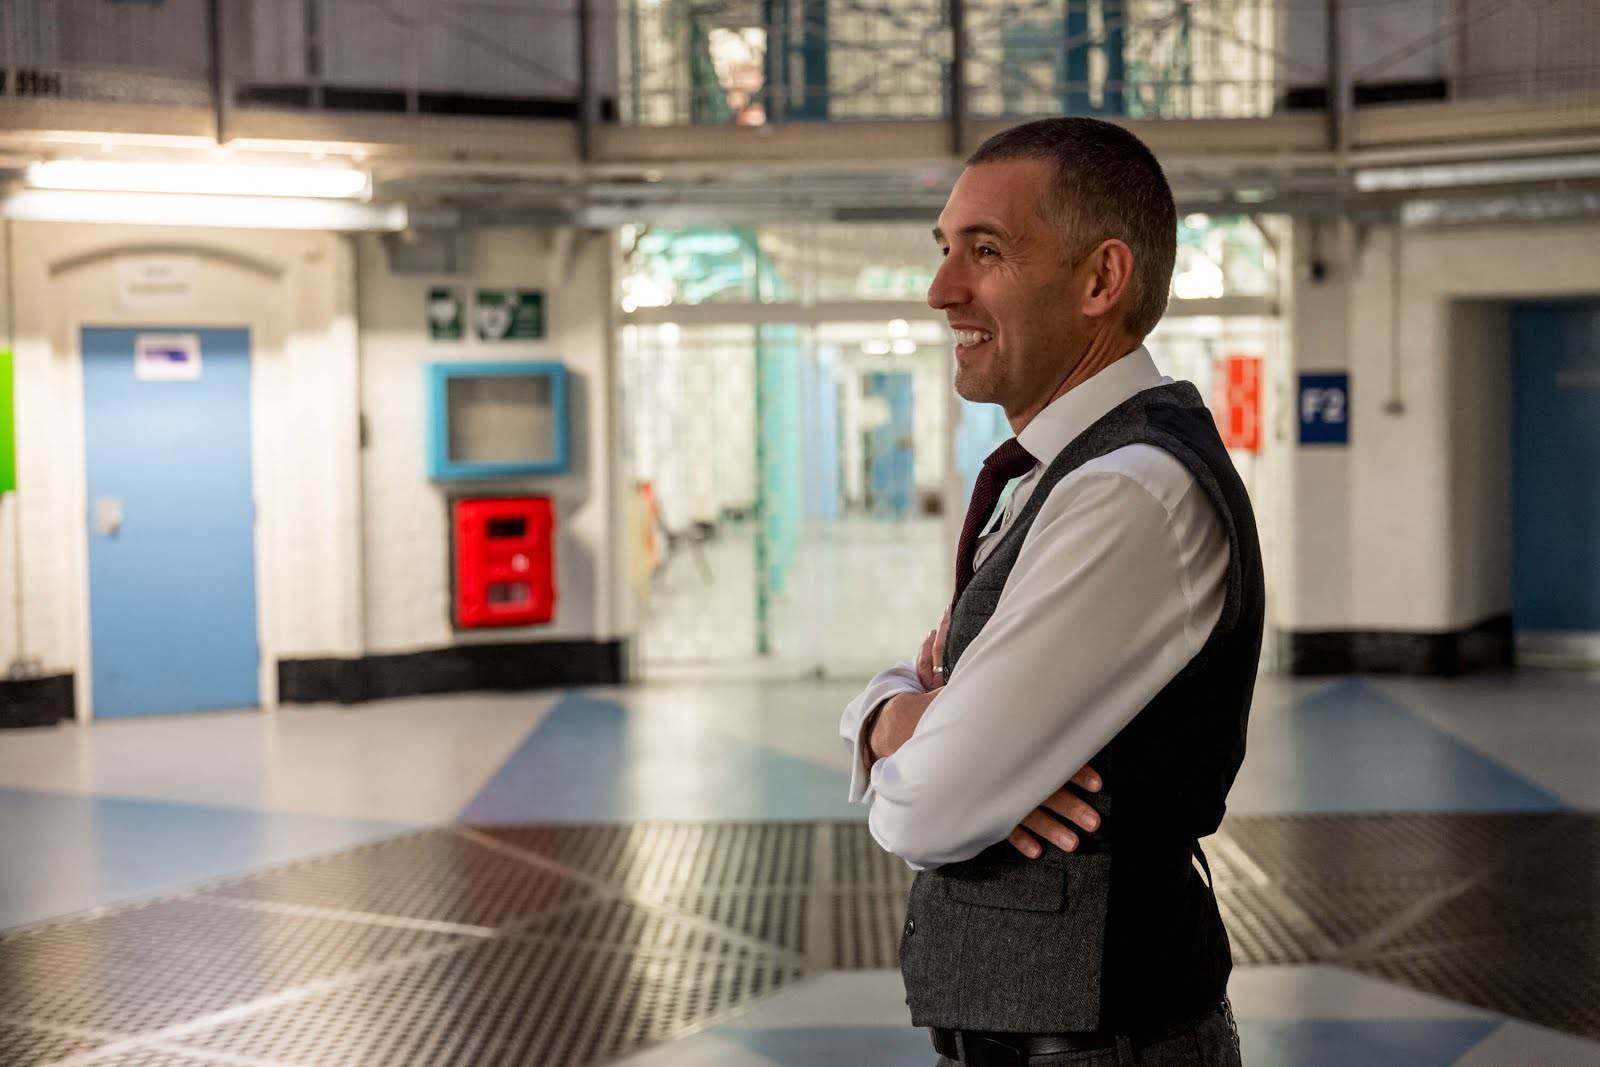 interesting graduate schemes to apply for unlocked prison officers